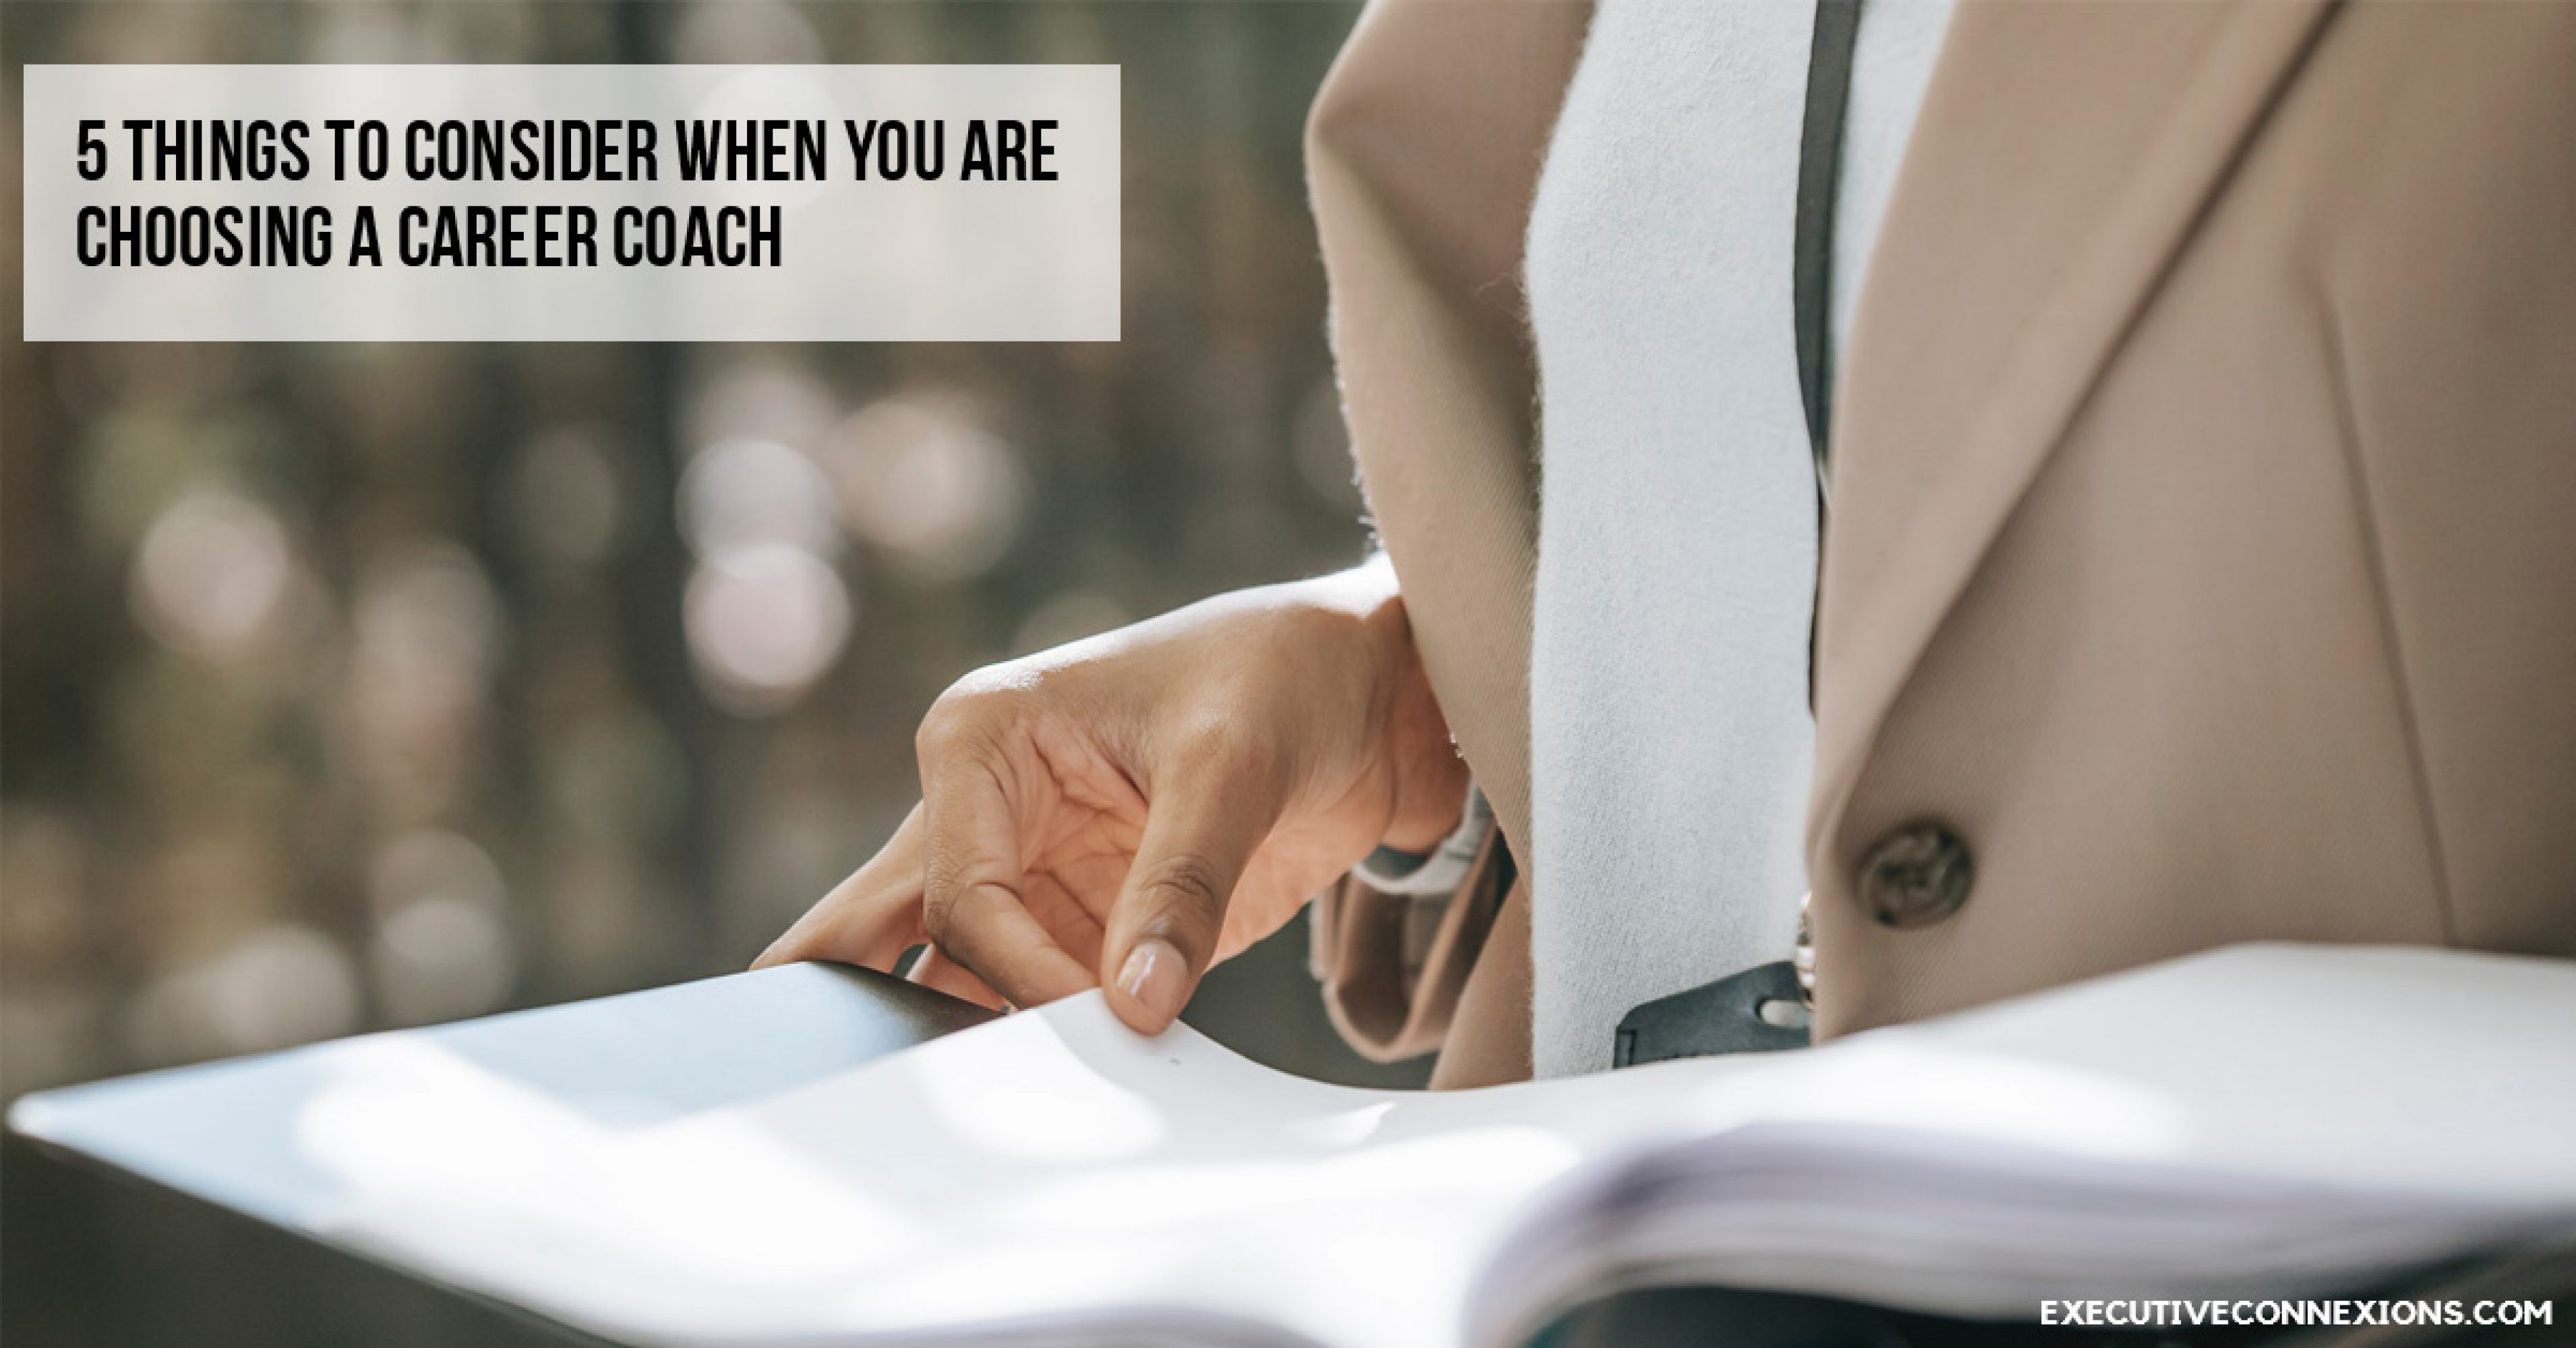 5-things-to-consider-when-you-are-choosing-a-career-coach